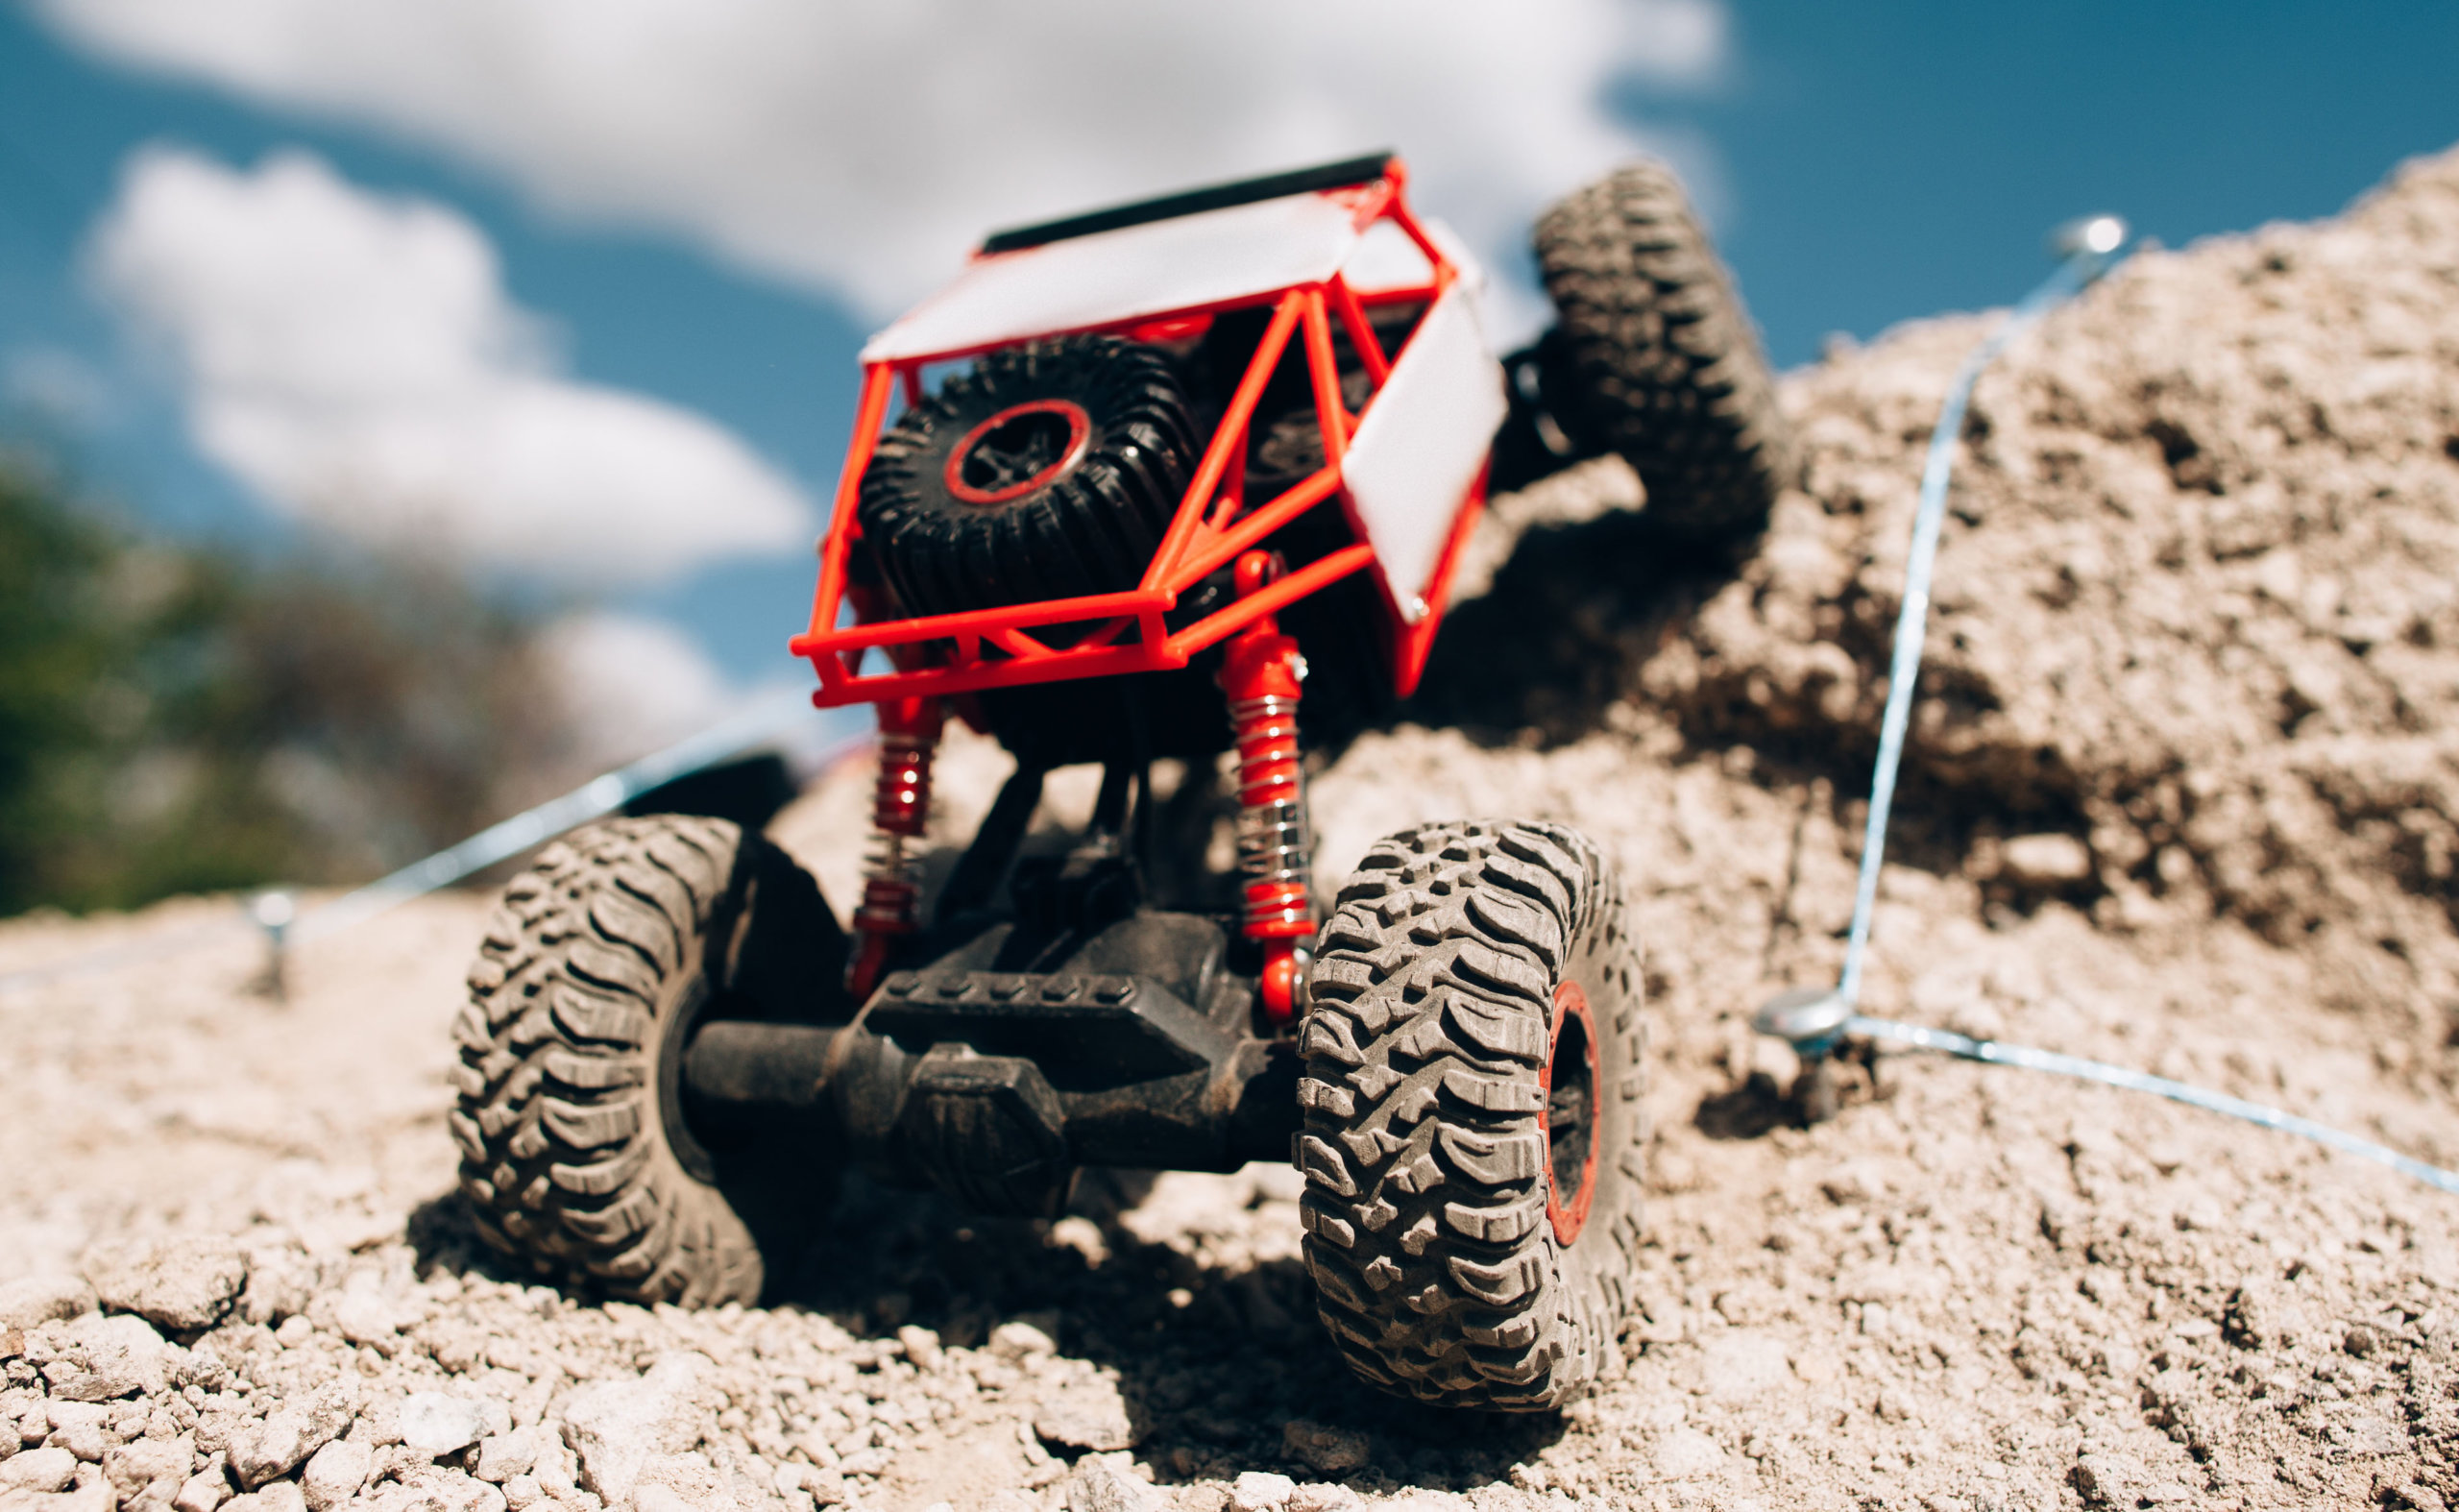 12 Best Remote Control Rock Crawlers